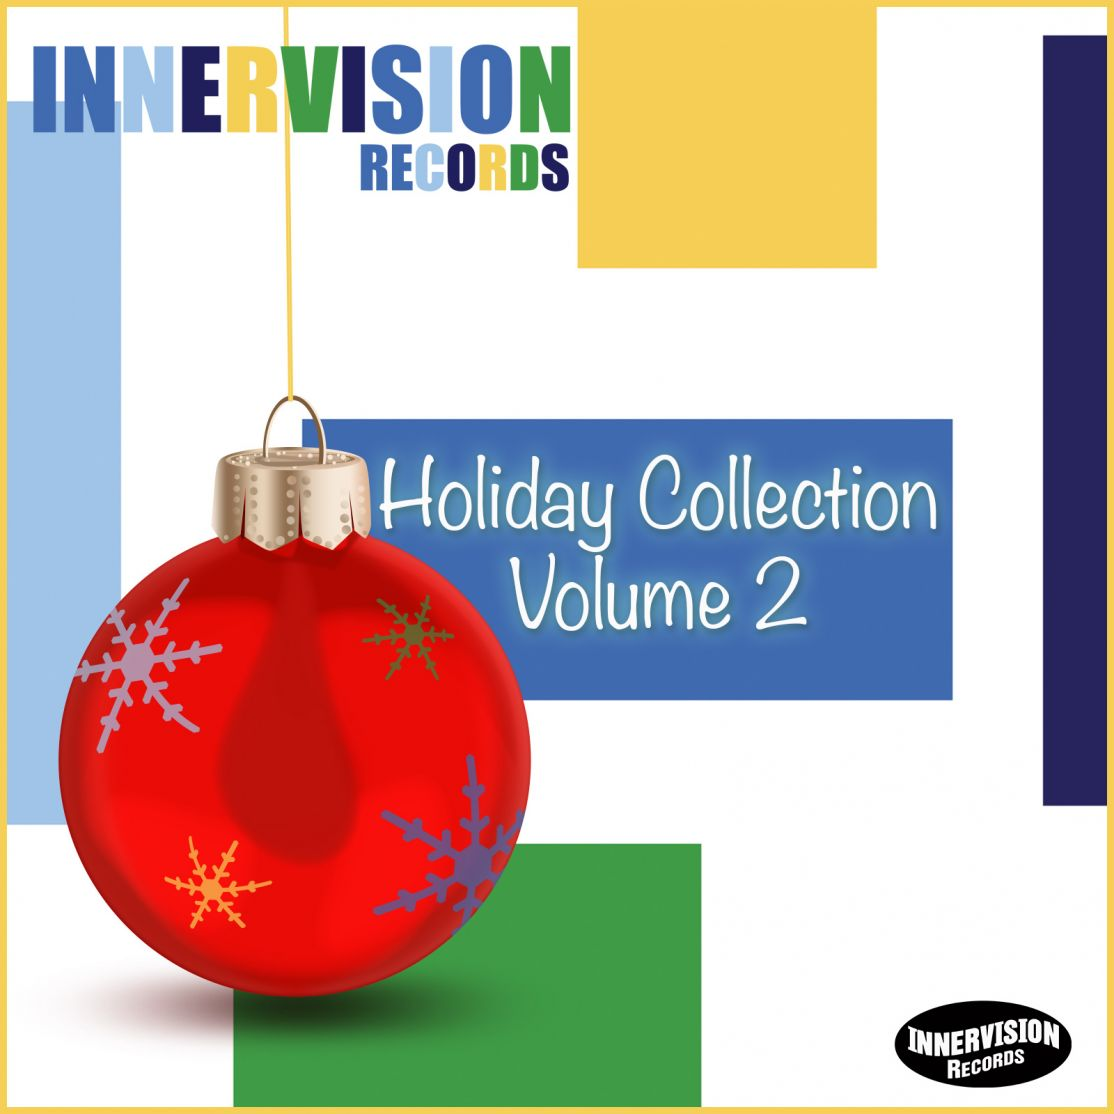 Innervision Records Holiday Collection Volume 2